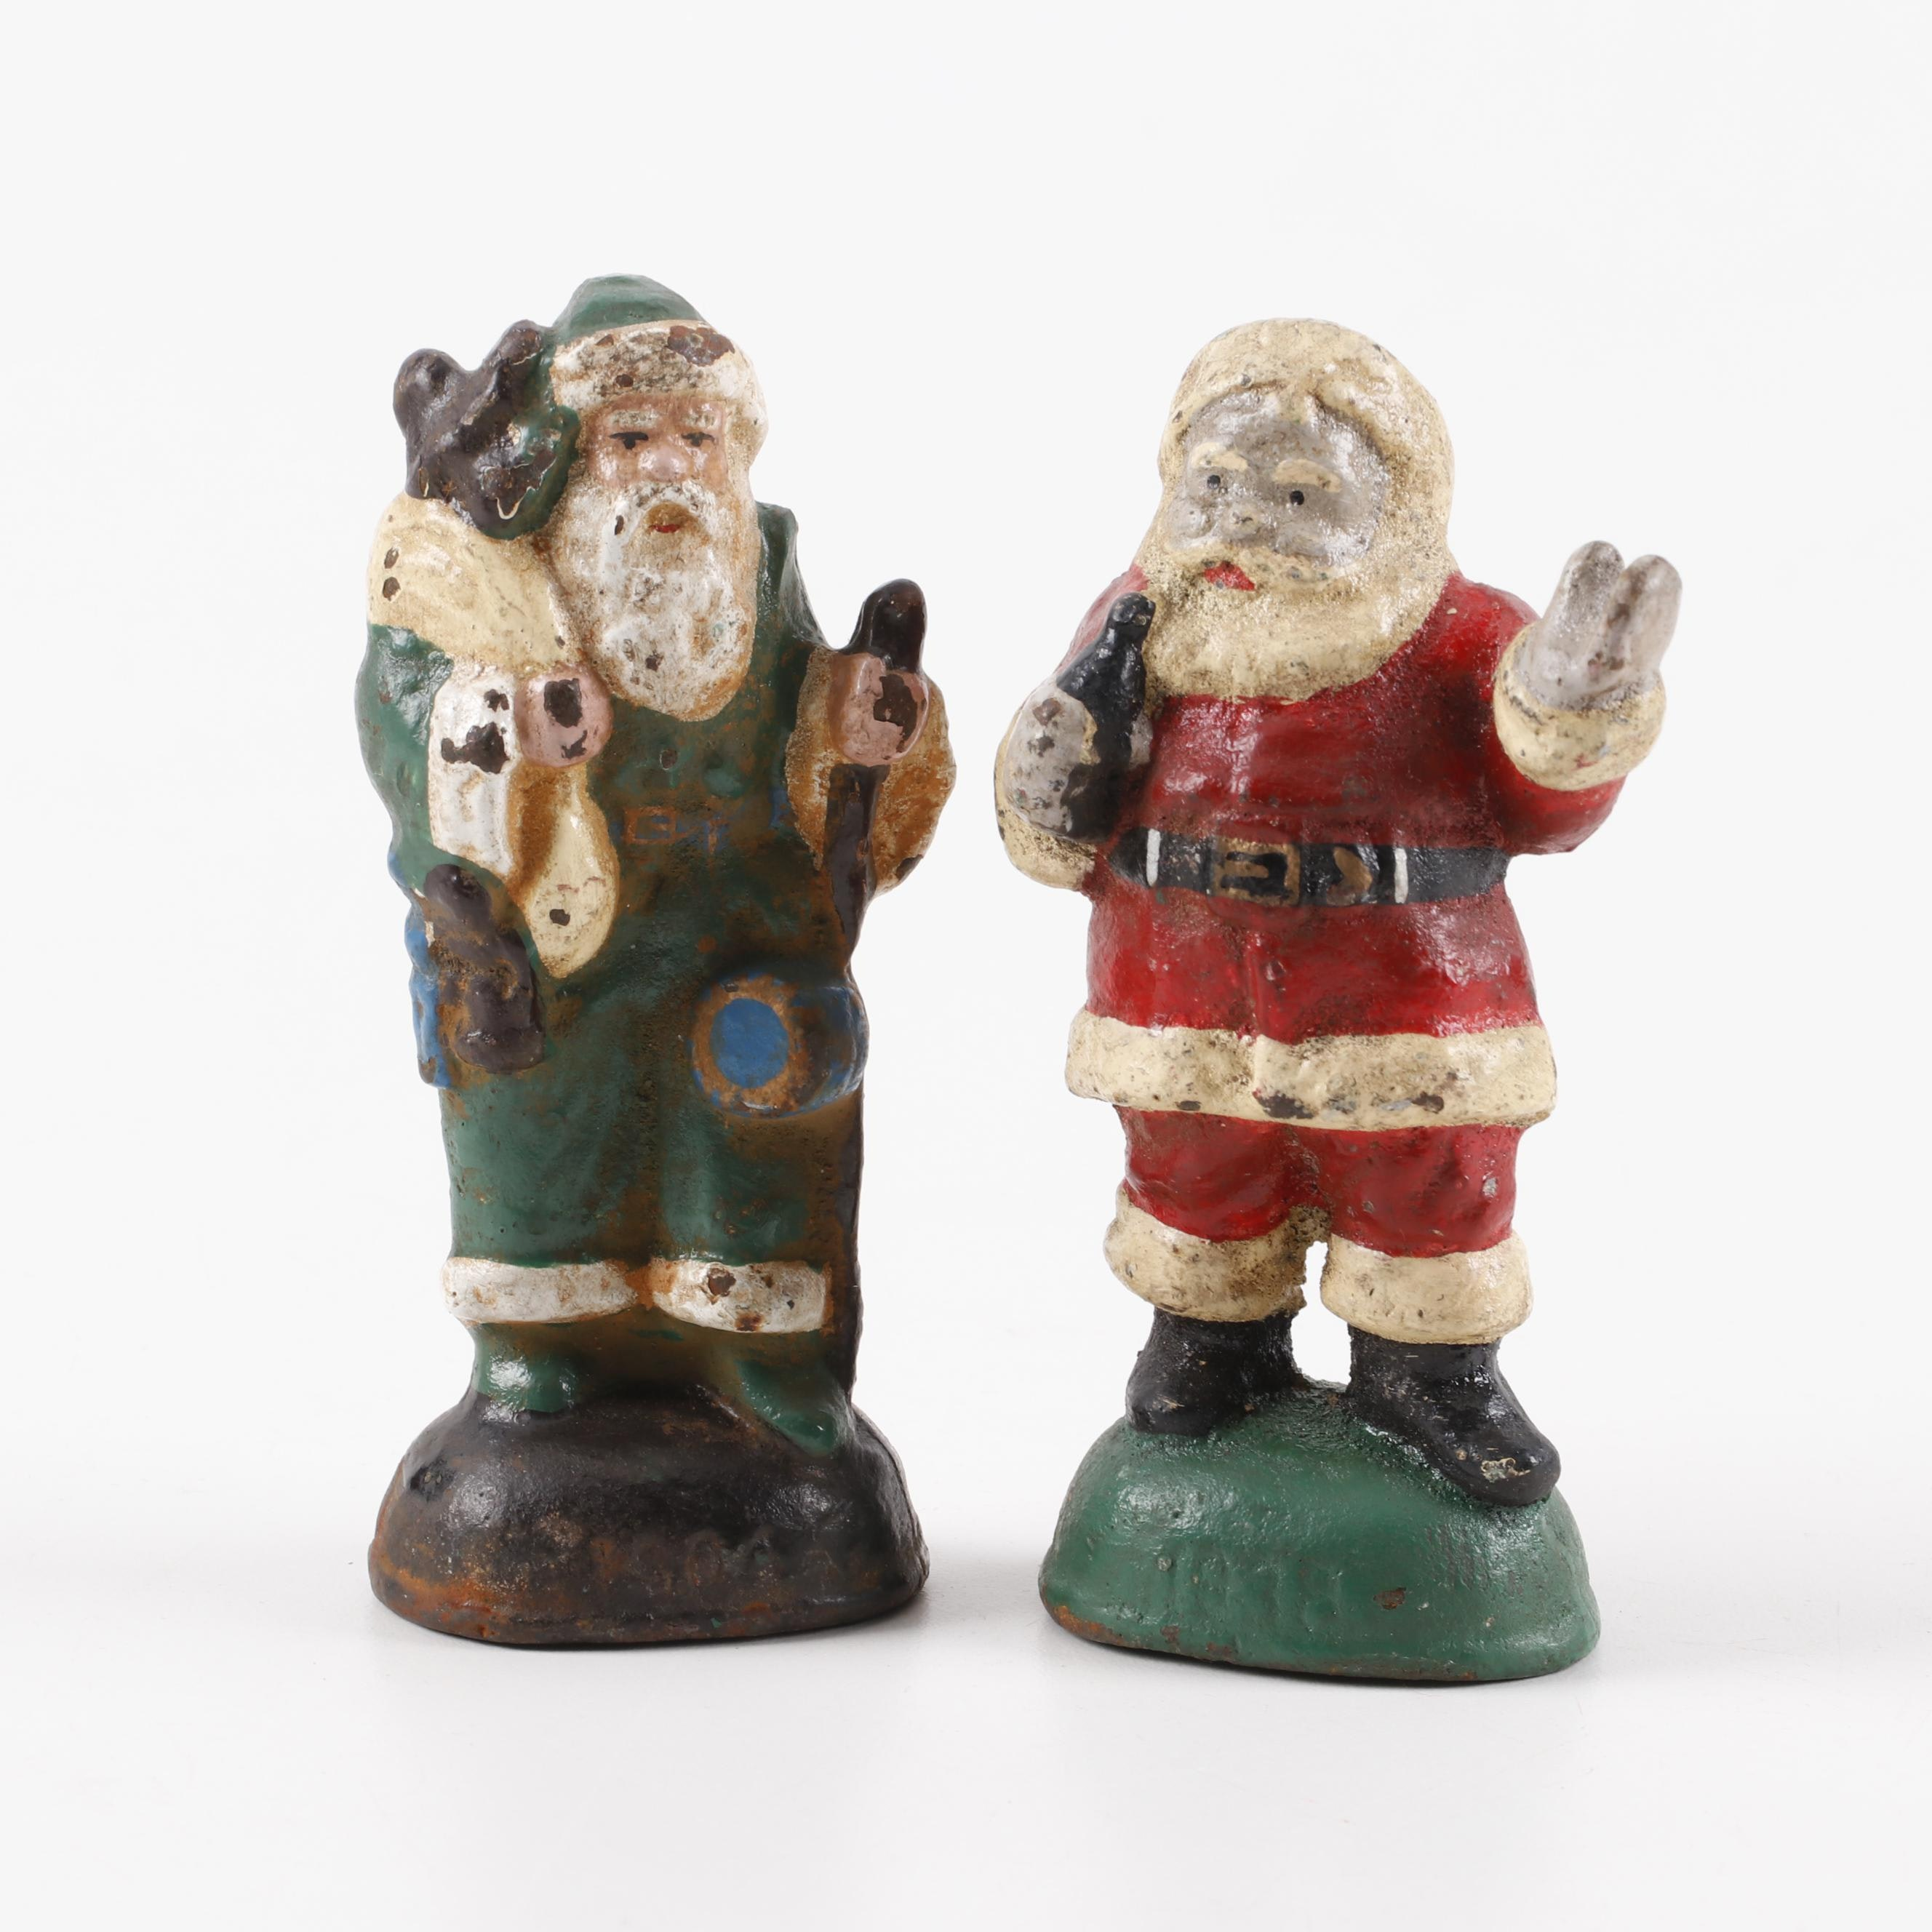 Hand-Painted Cast Iron Santa Claus and St. Nicholas Figurines, circa 1900